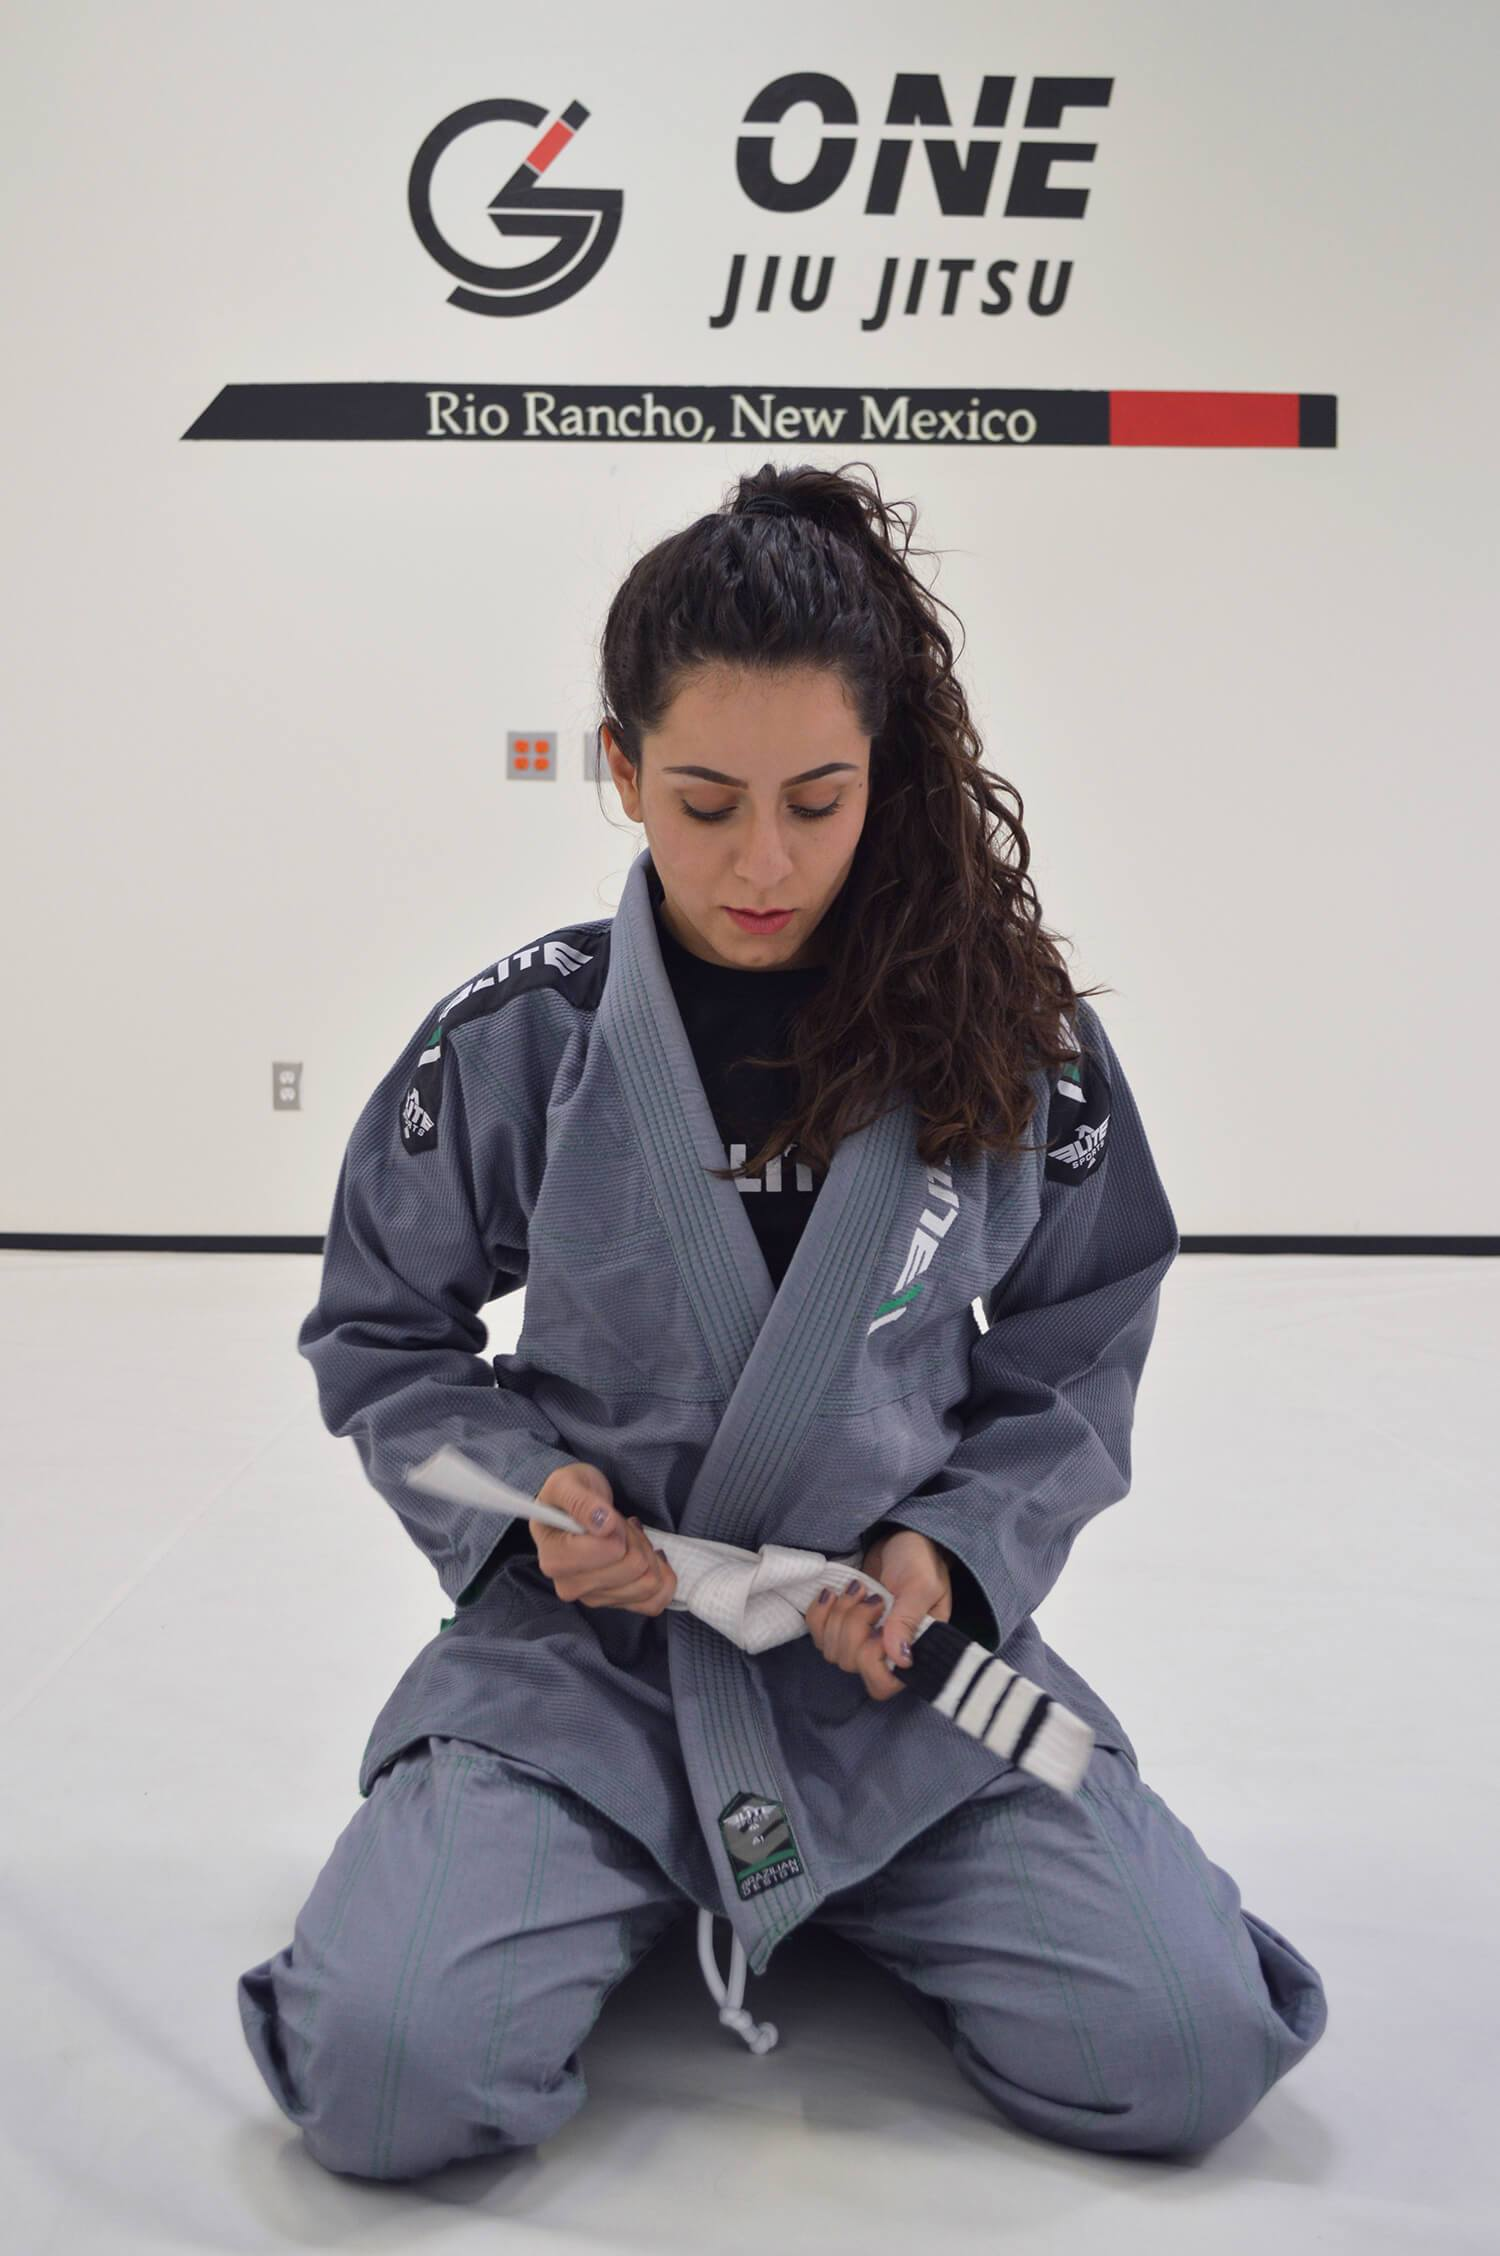 Elite-sports-Team-Elite-NO GI-Andria- Torrez-image4.jpeg